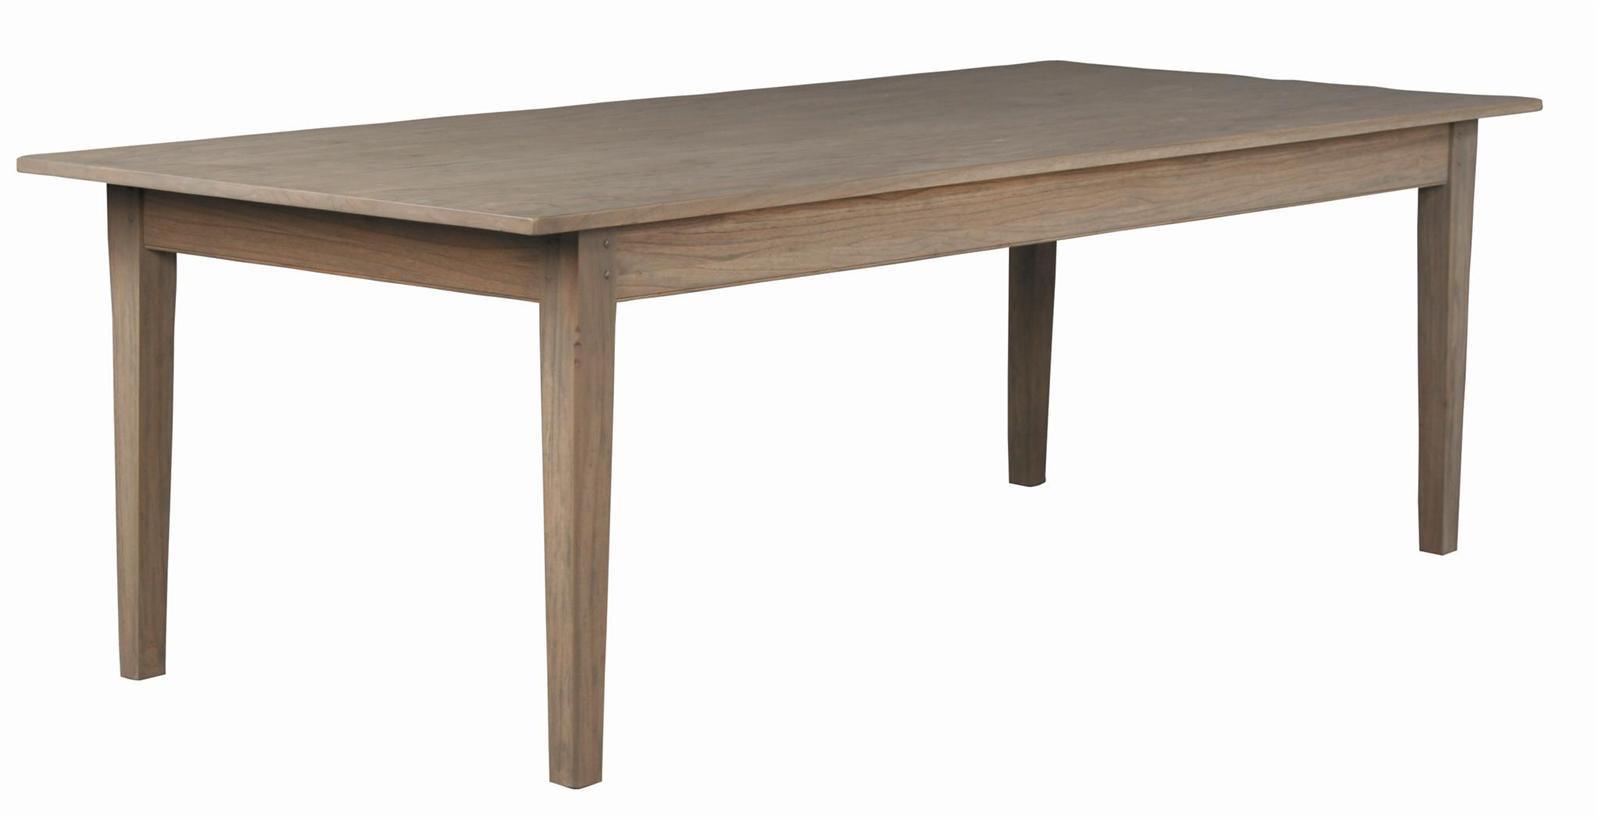 Wwwcrbogercom Farmhouse Dining Tables For Sale